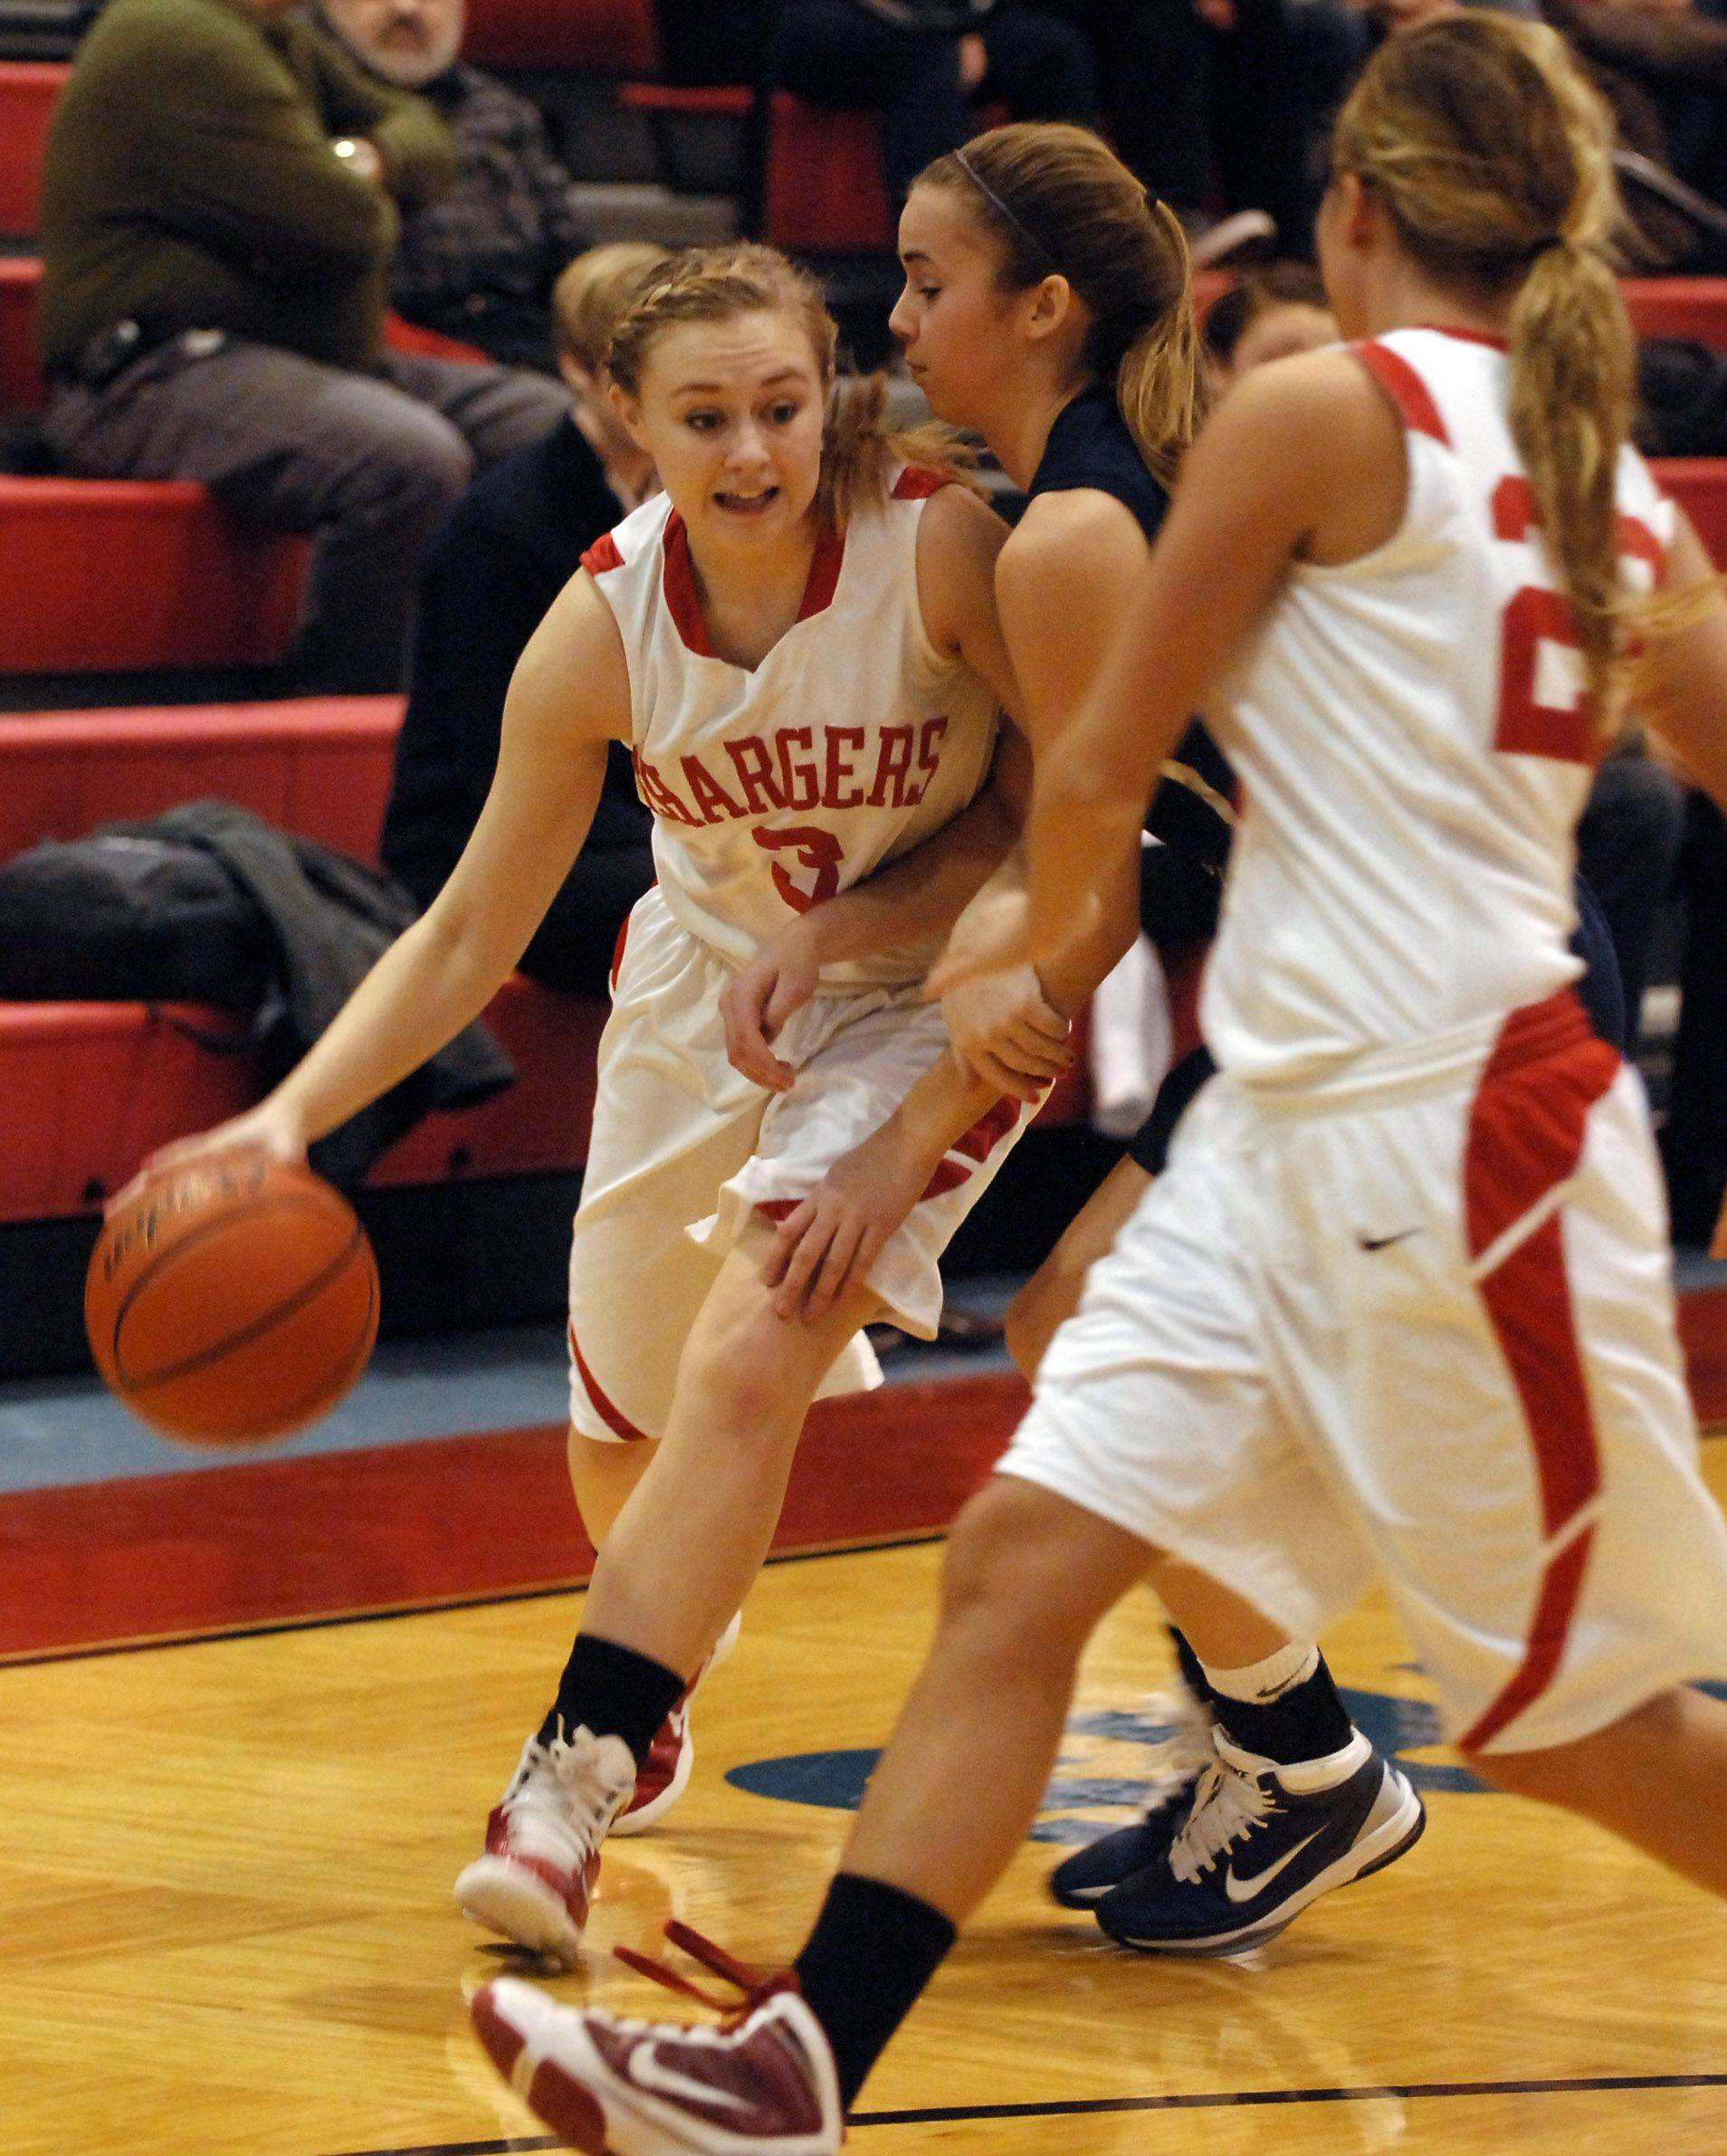 Images from the Dundee-Crown vs. New Trier girls basketball game Monday, December 27 at the Charger Classic.